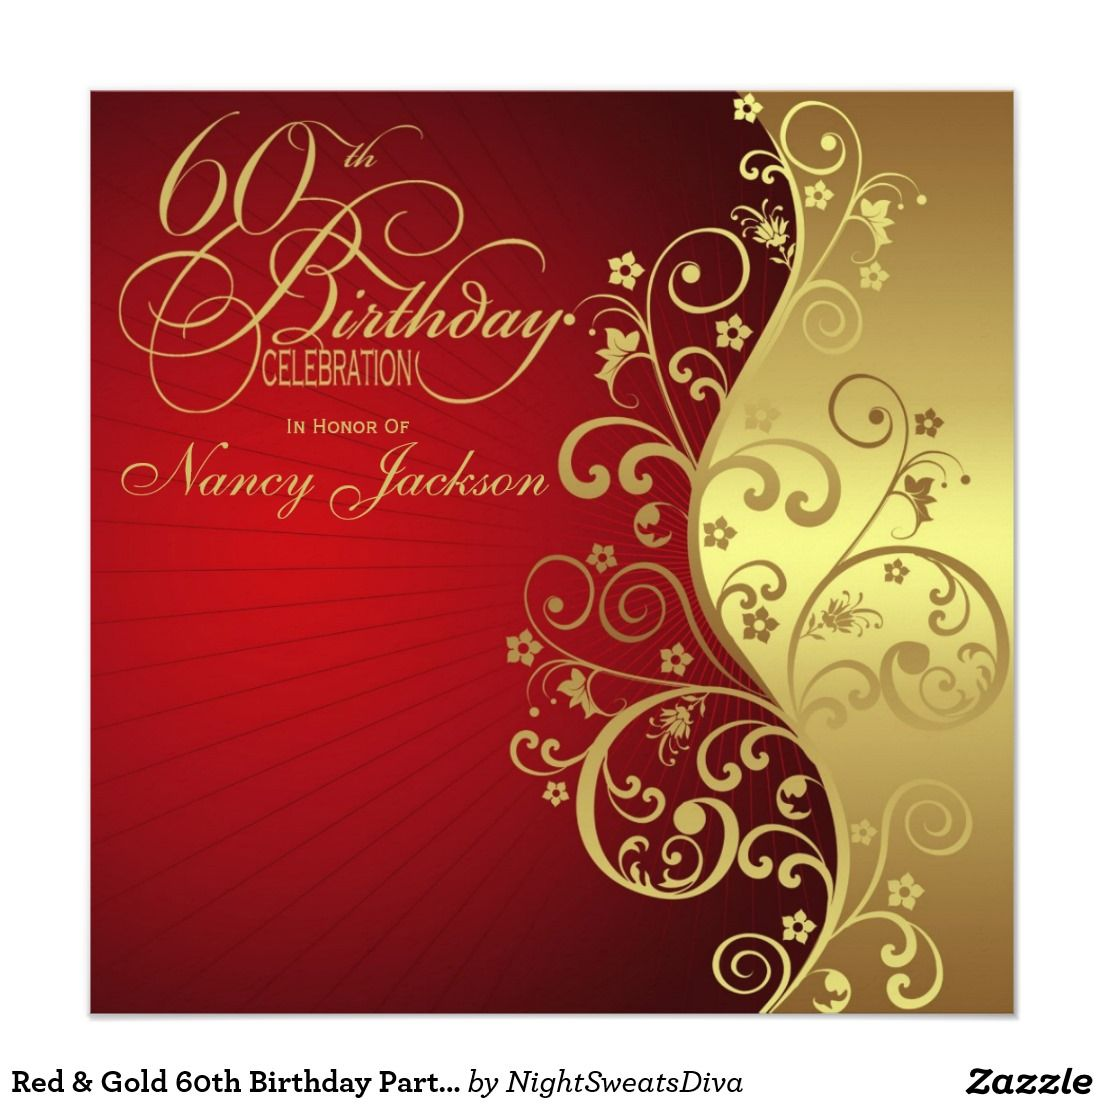 Red & Gold 60th Birthday Party Invitation | Invitations ...